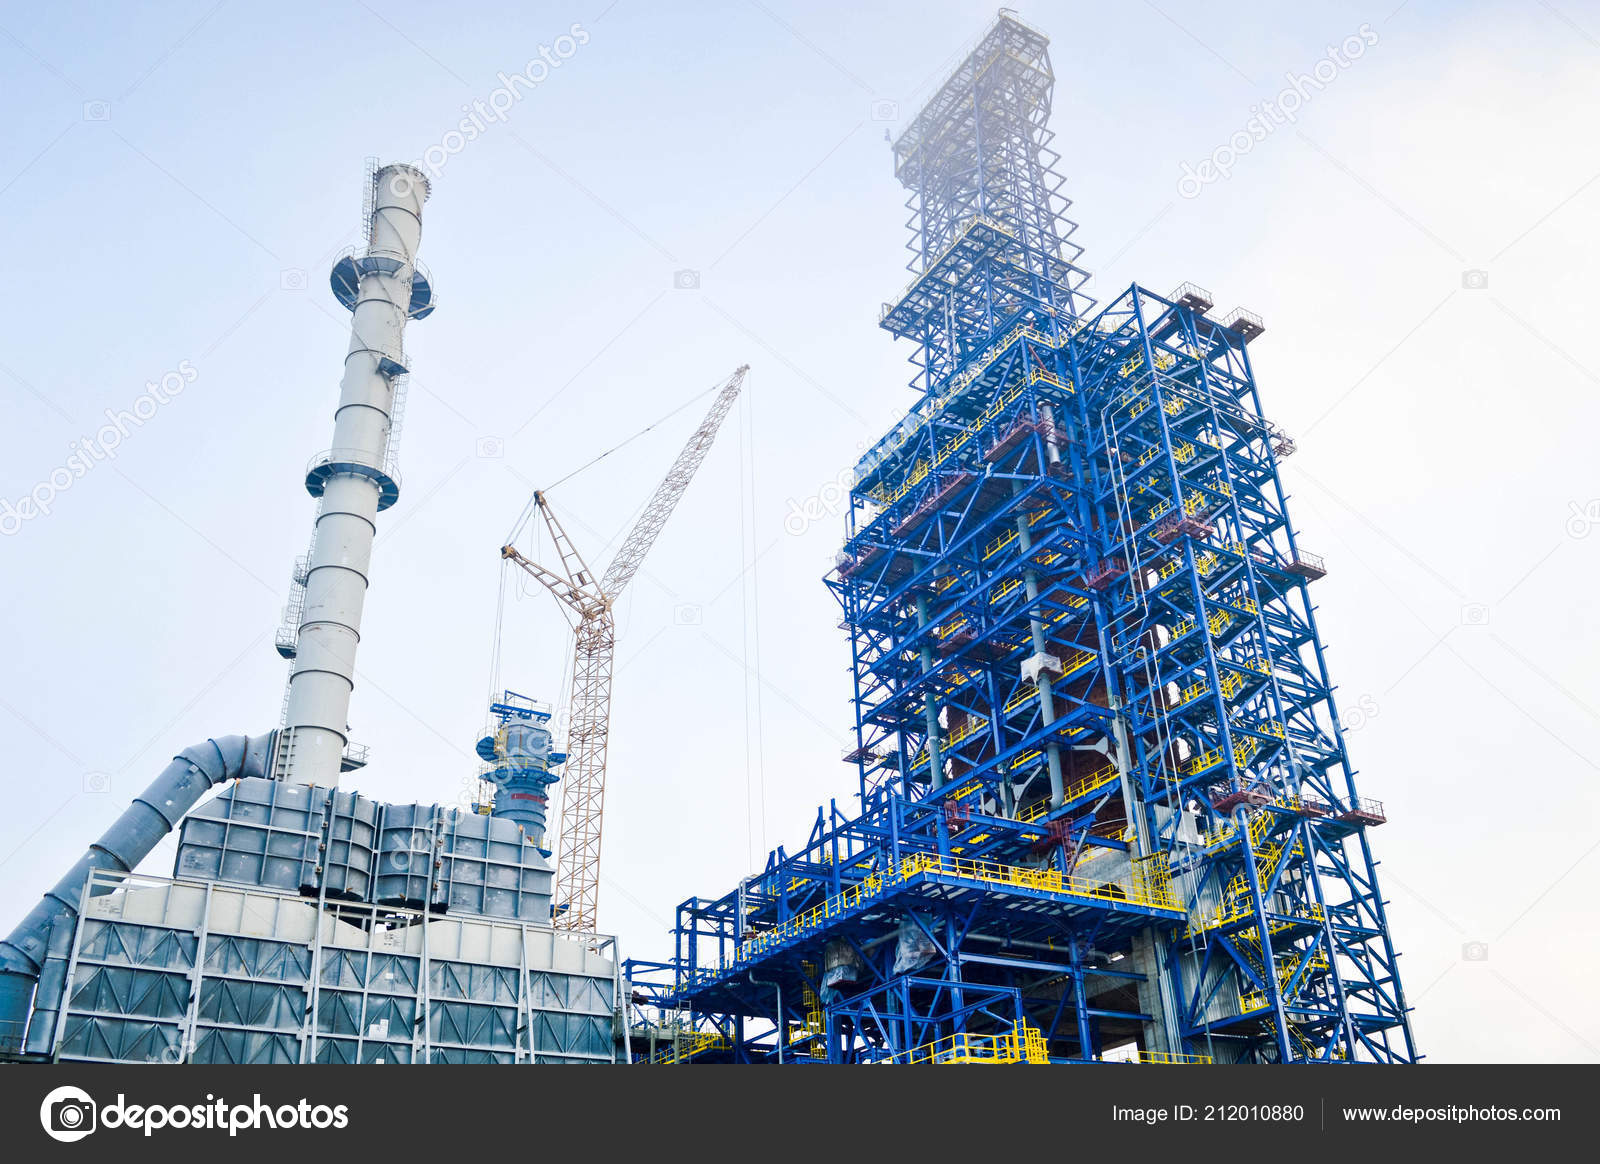 Construction with cranes of a large blue chemical plant at an oil